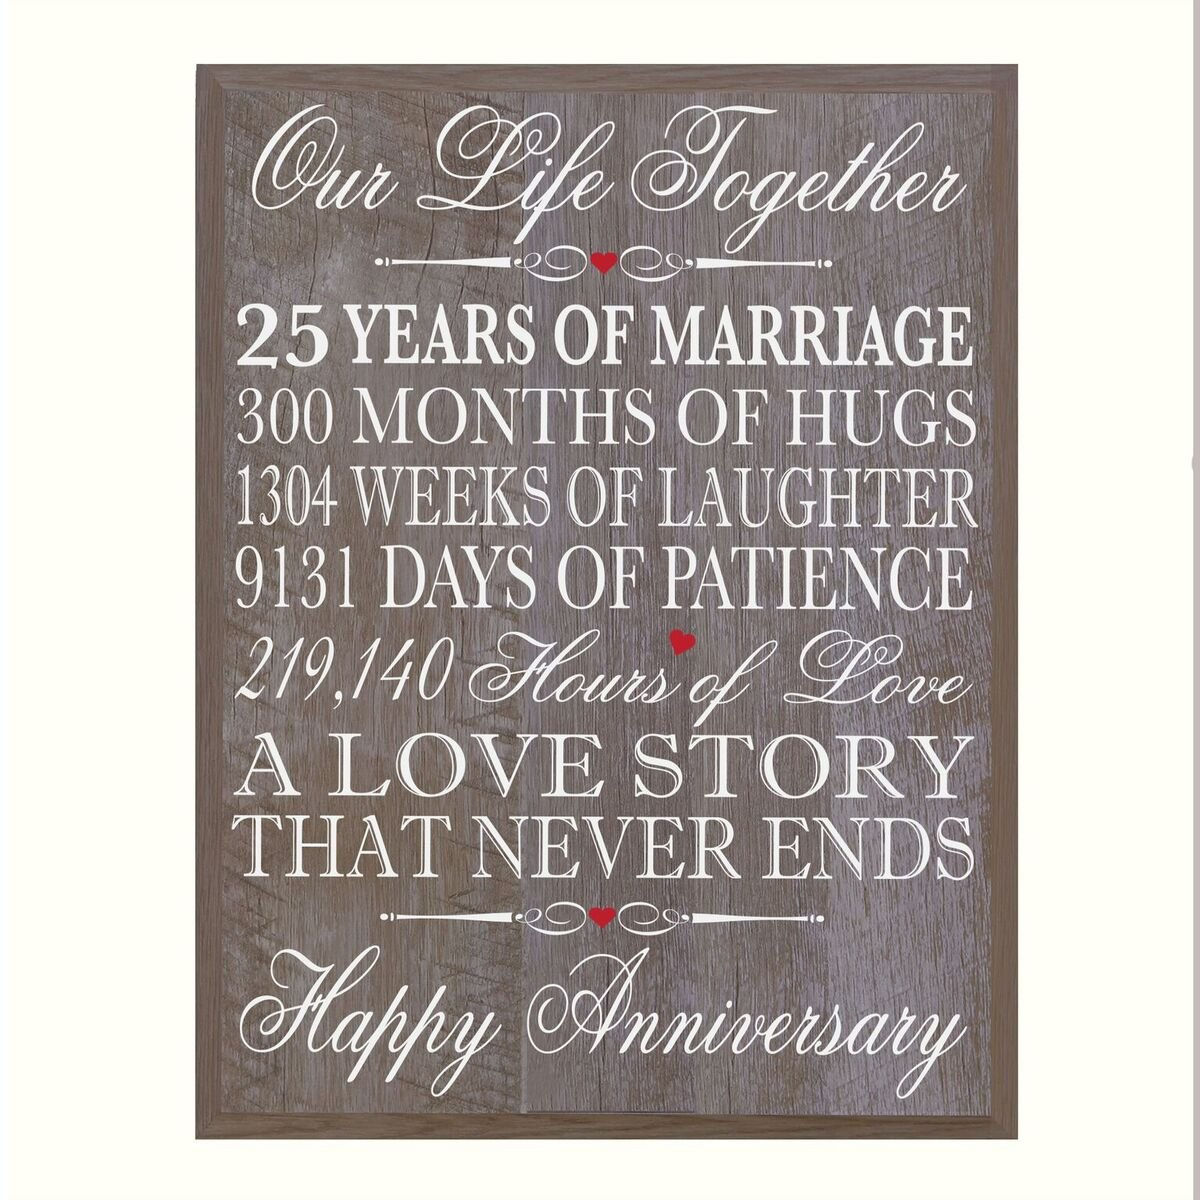 LifeSong Milestones 25th Wedding Anniversary Wall Plaque Gifts for Couple, 25th Anniversary Gifts for Her,25th Wedding Anniversary Gifts for Him 12'' W X 15'' H Wall Plaque By (Barnwood)